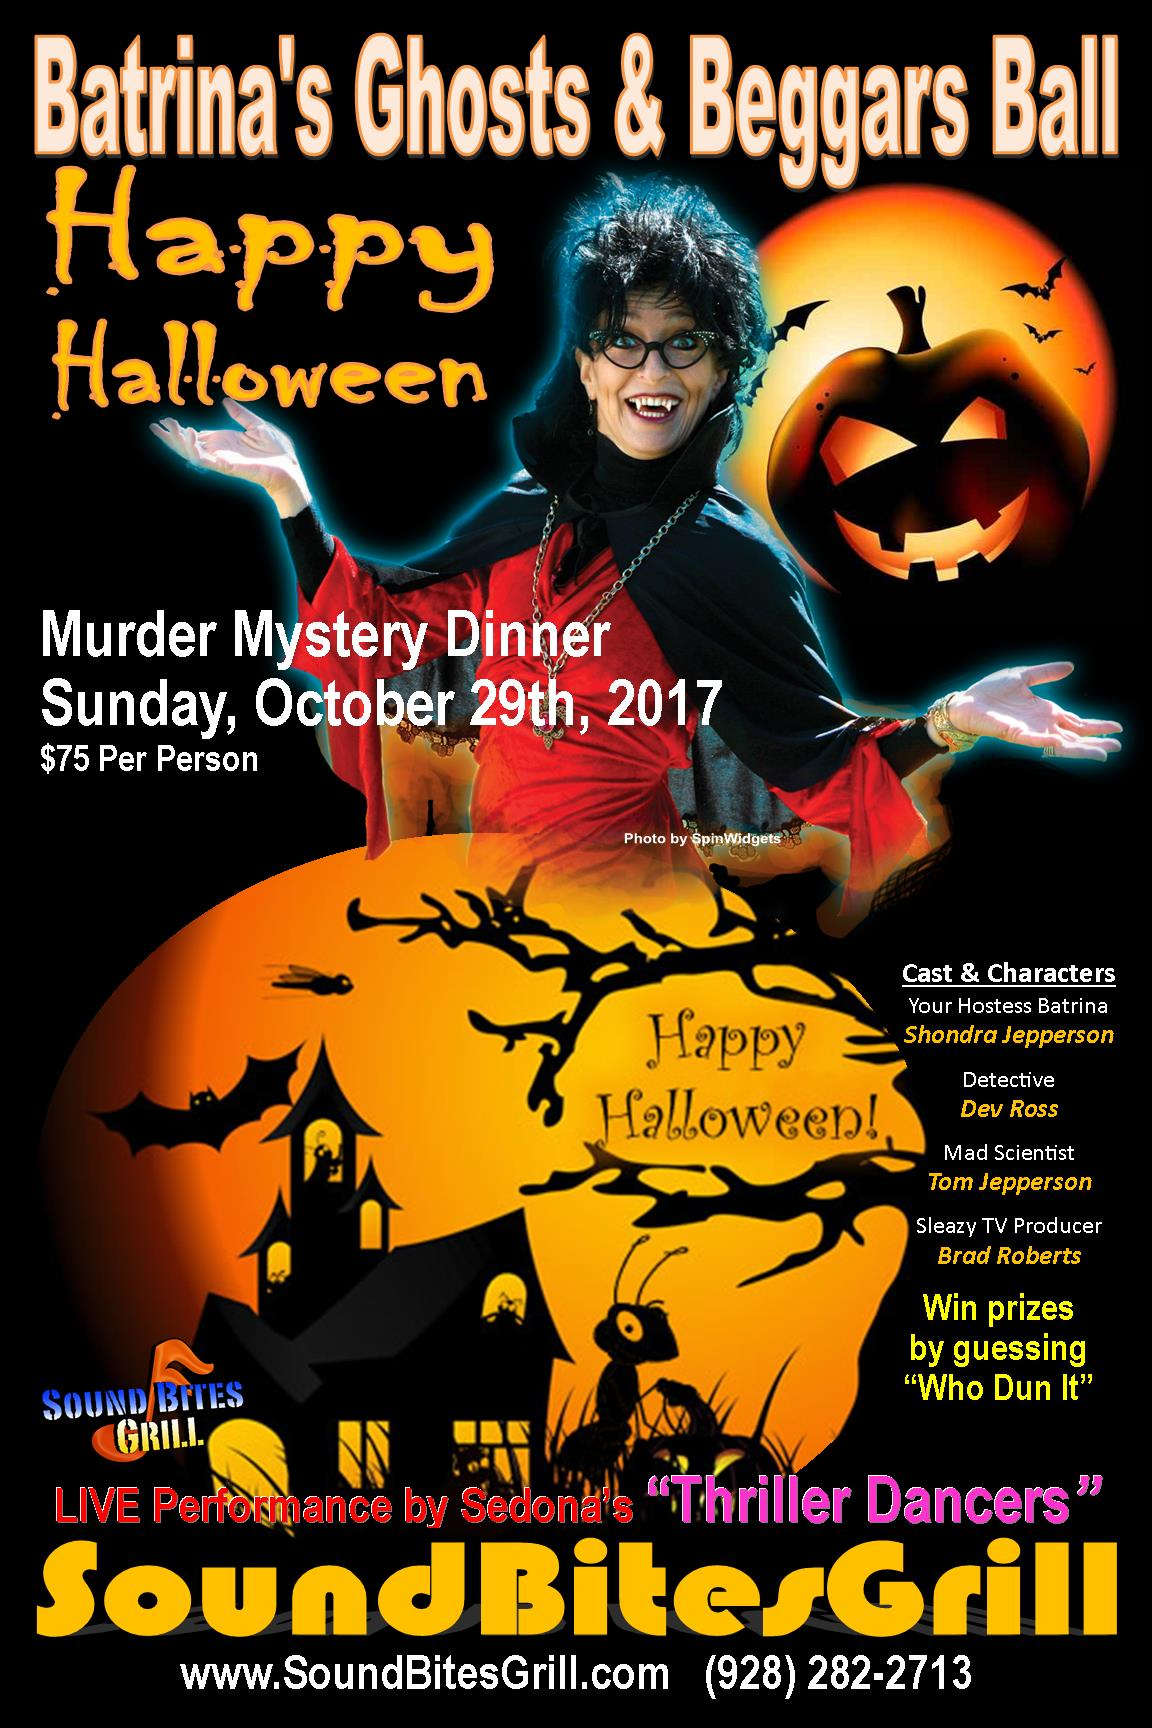 Batrina's Ghosts & Beggars Ball - Oct 29, 2017